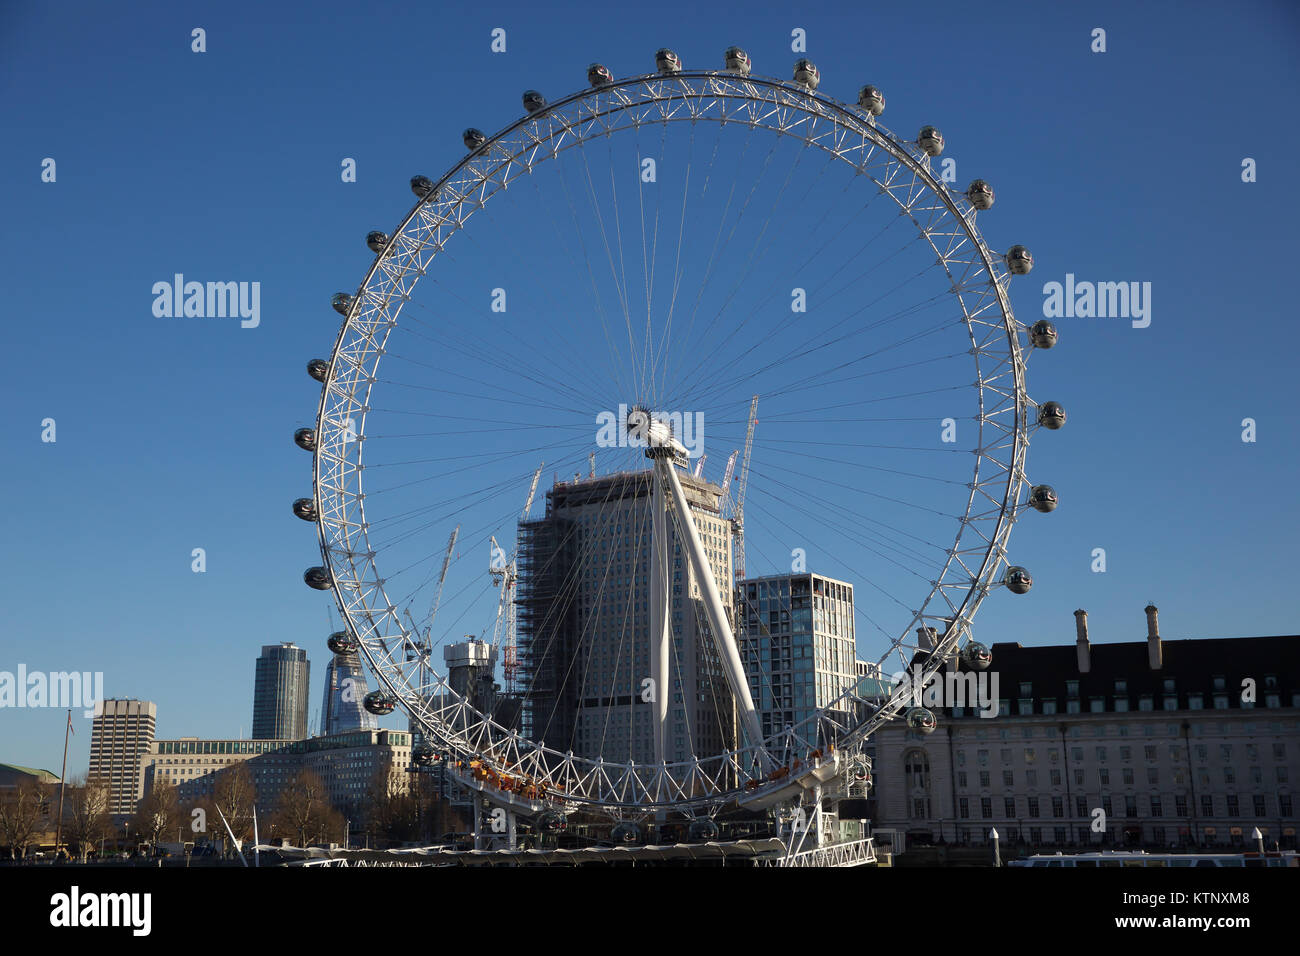 London, UK. 28th Dec, 2017.Blue skies although very chilly over the London Eye Credit: Keith Larby/Alamy Live News - Stock Image